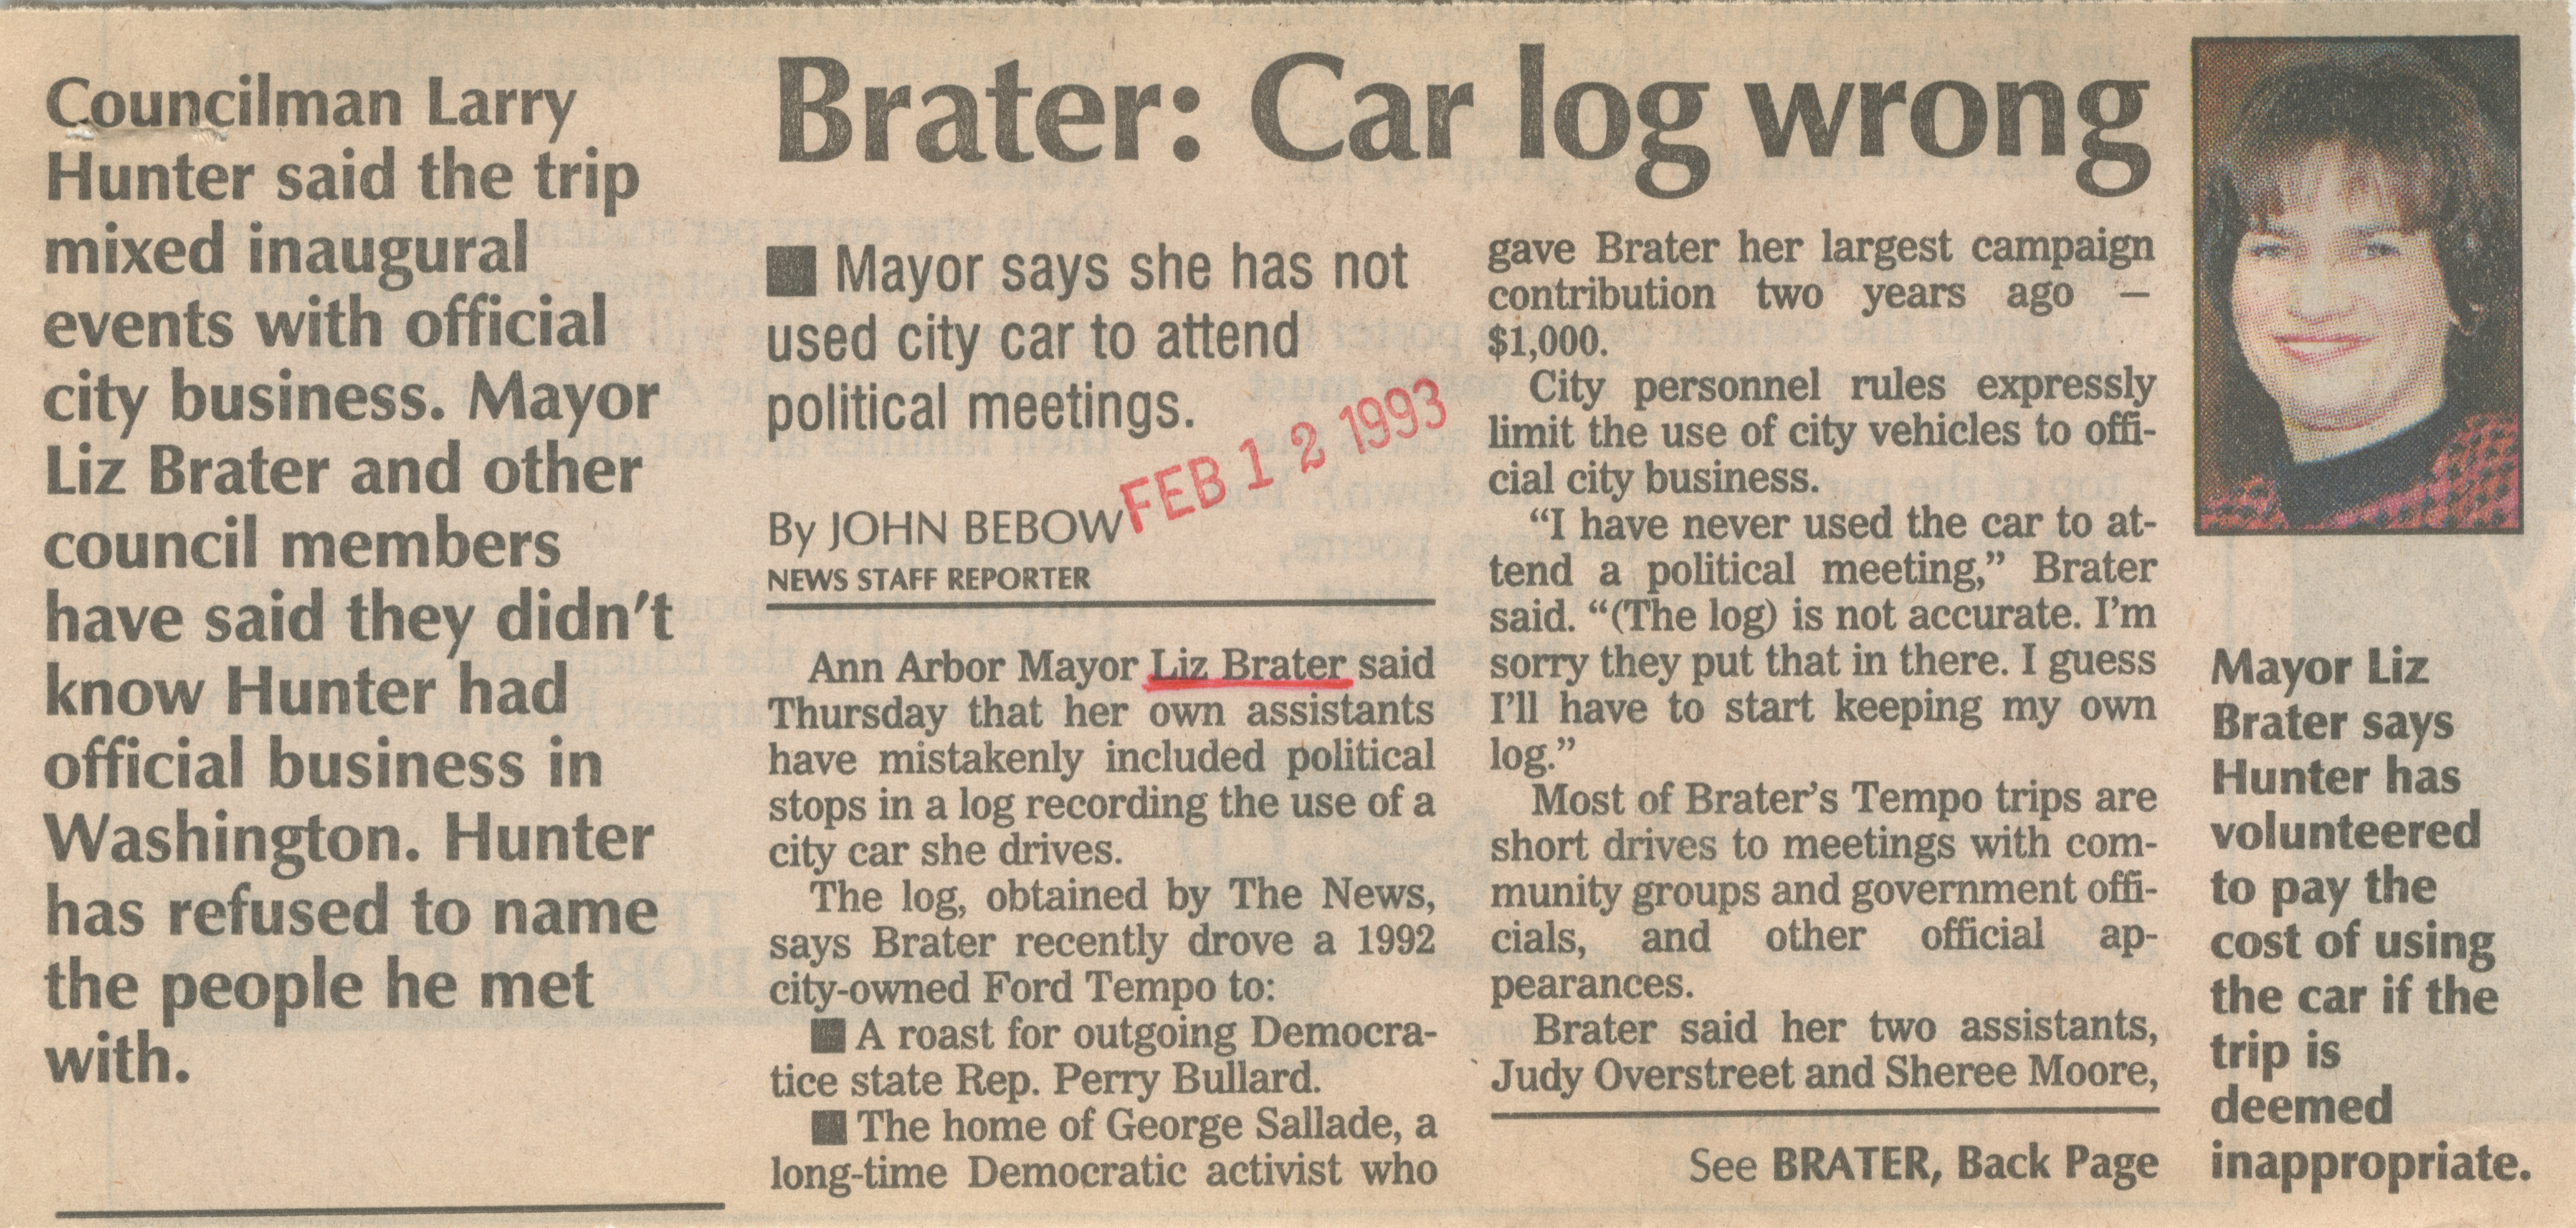 Brater: Car log wrong image